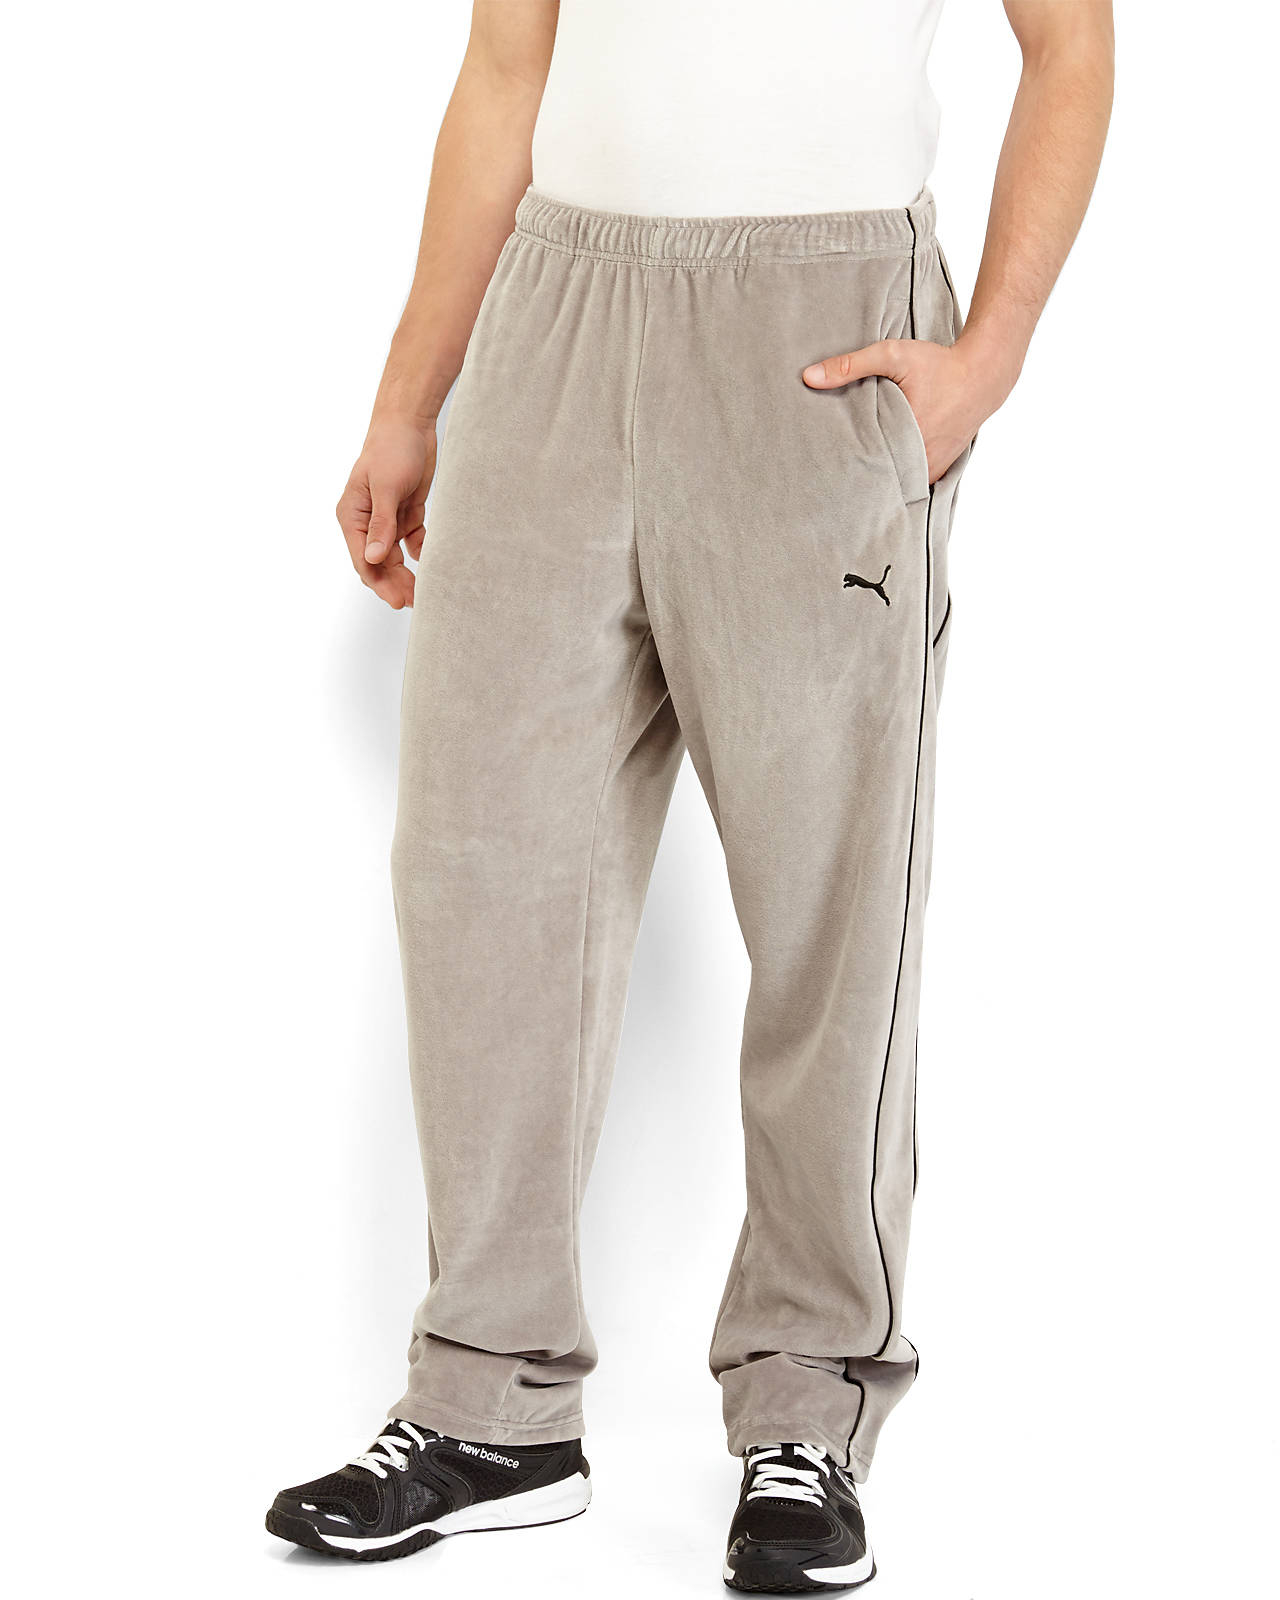 Lyst Puma Grey Velour Pants In Gray For Men